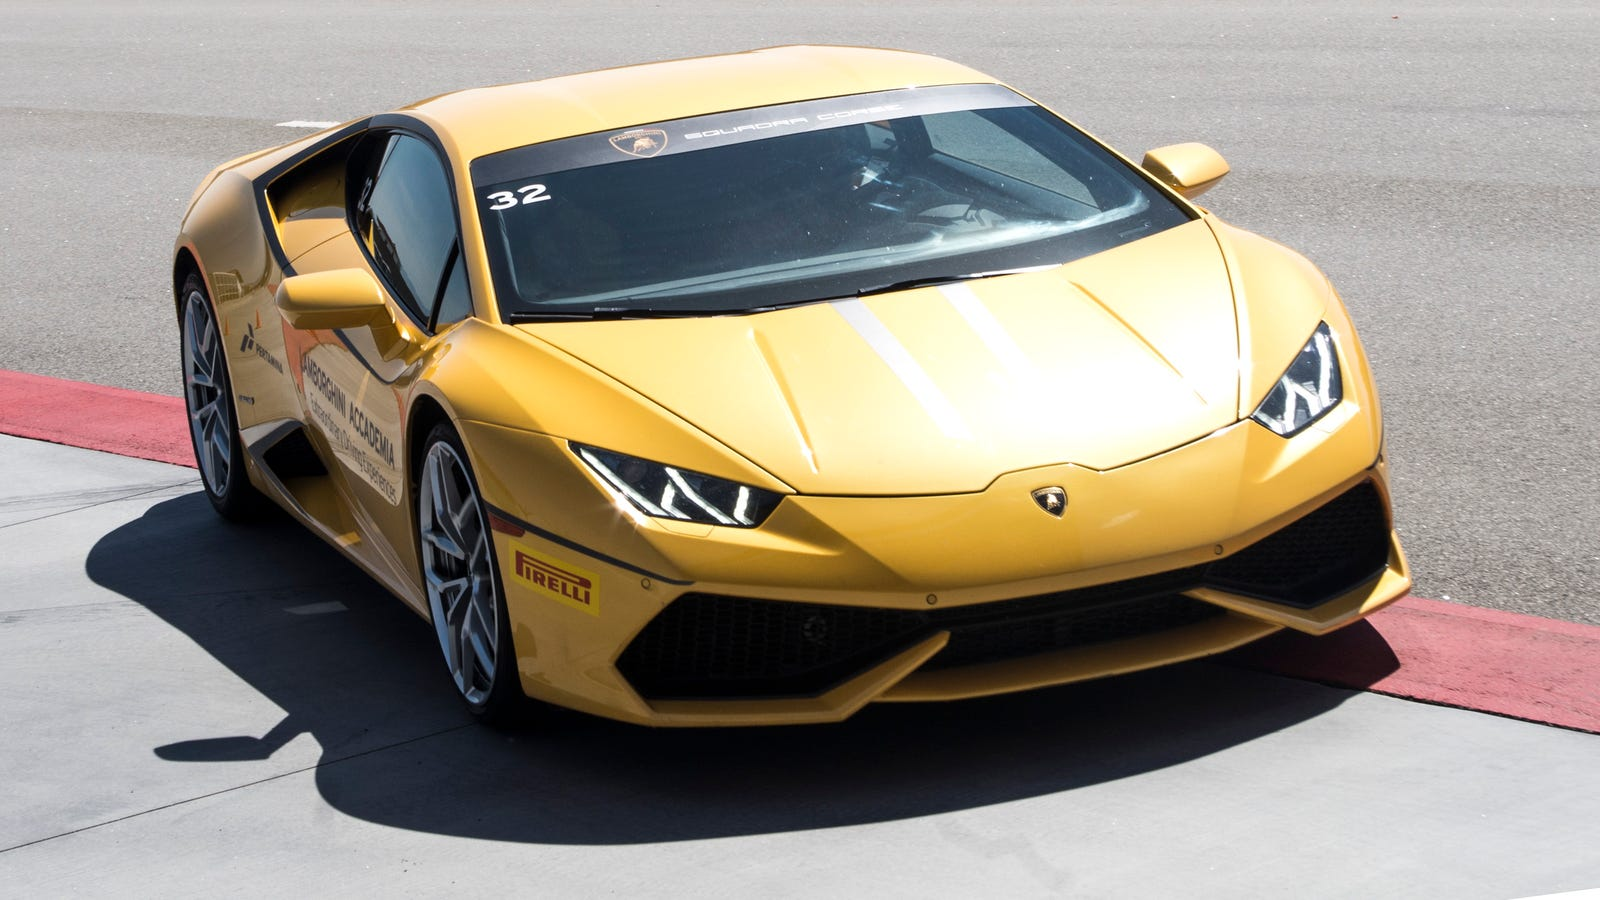 Pure Speed Isn't Even The Best Thing About The Lamborghini